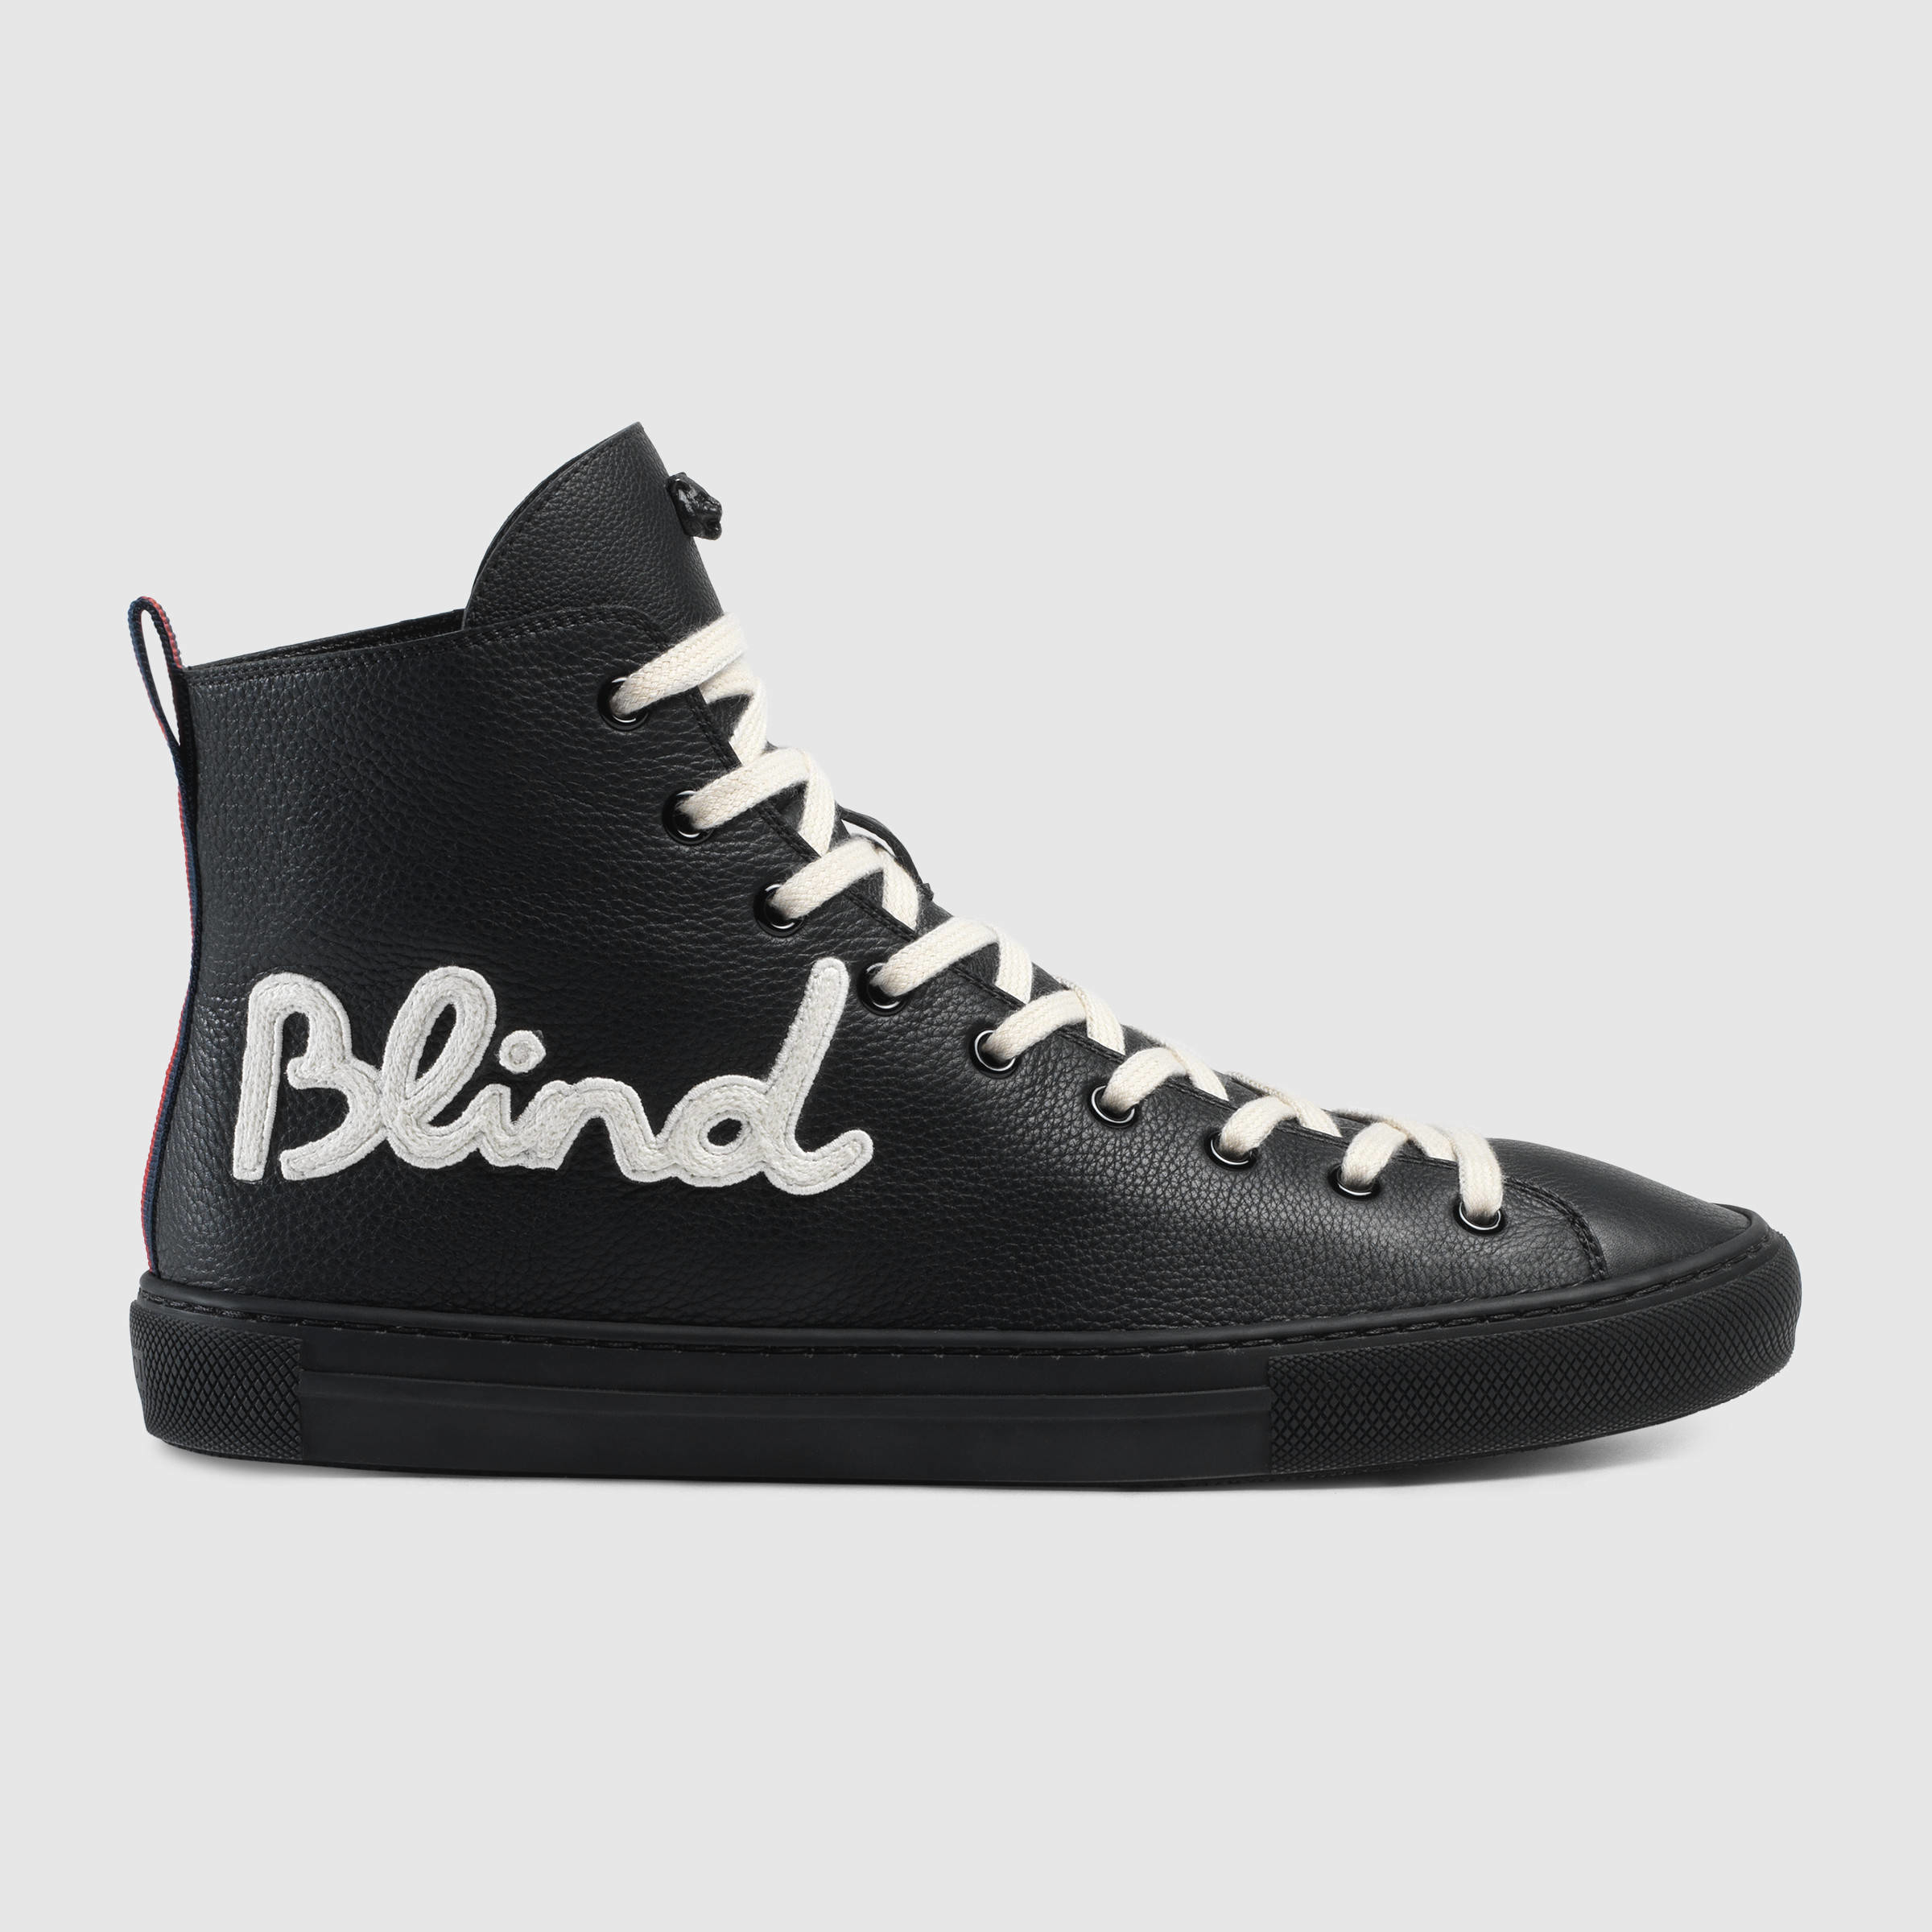 gucci shoes black and white. gallery gucci shoes black and white